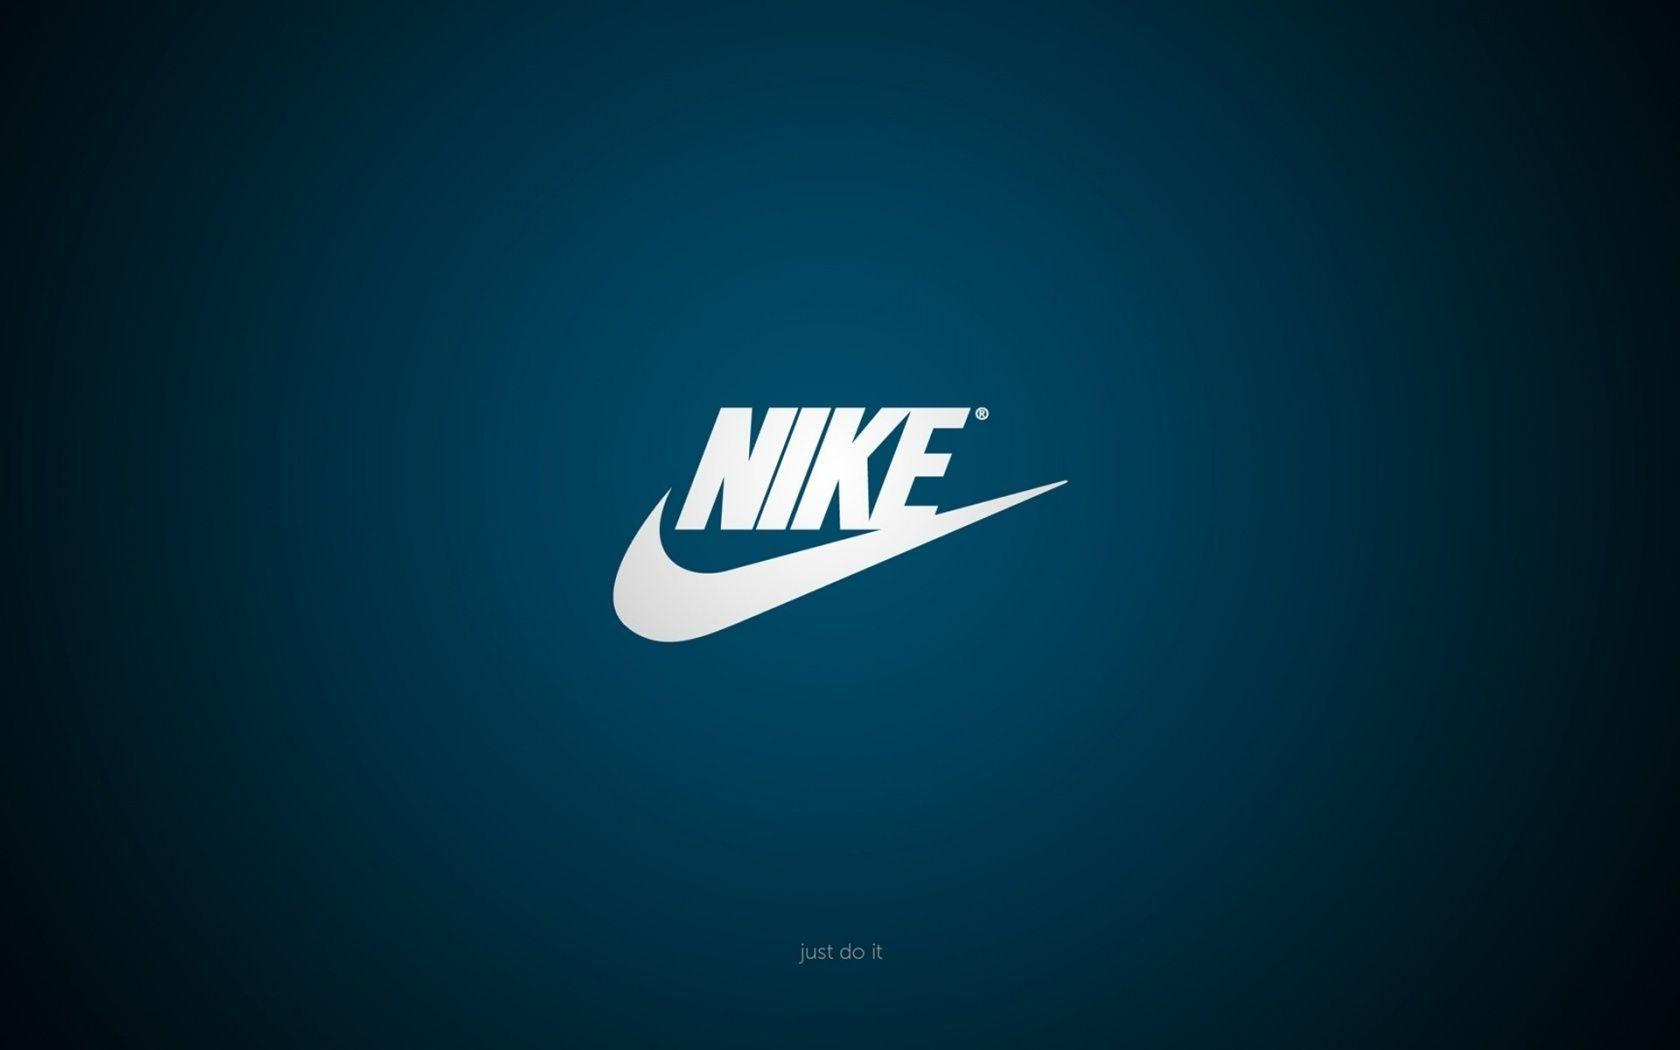 Nike: Just Do It